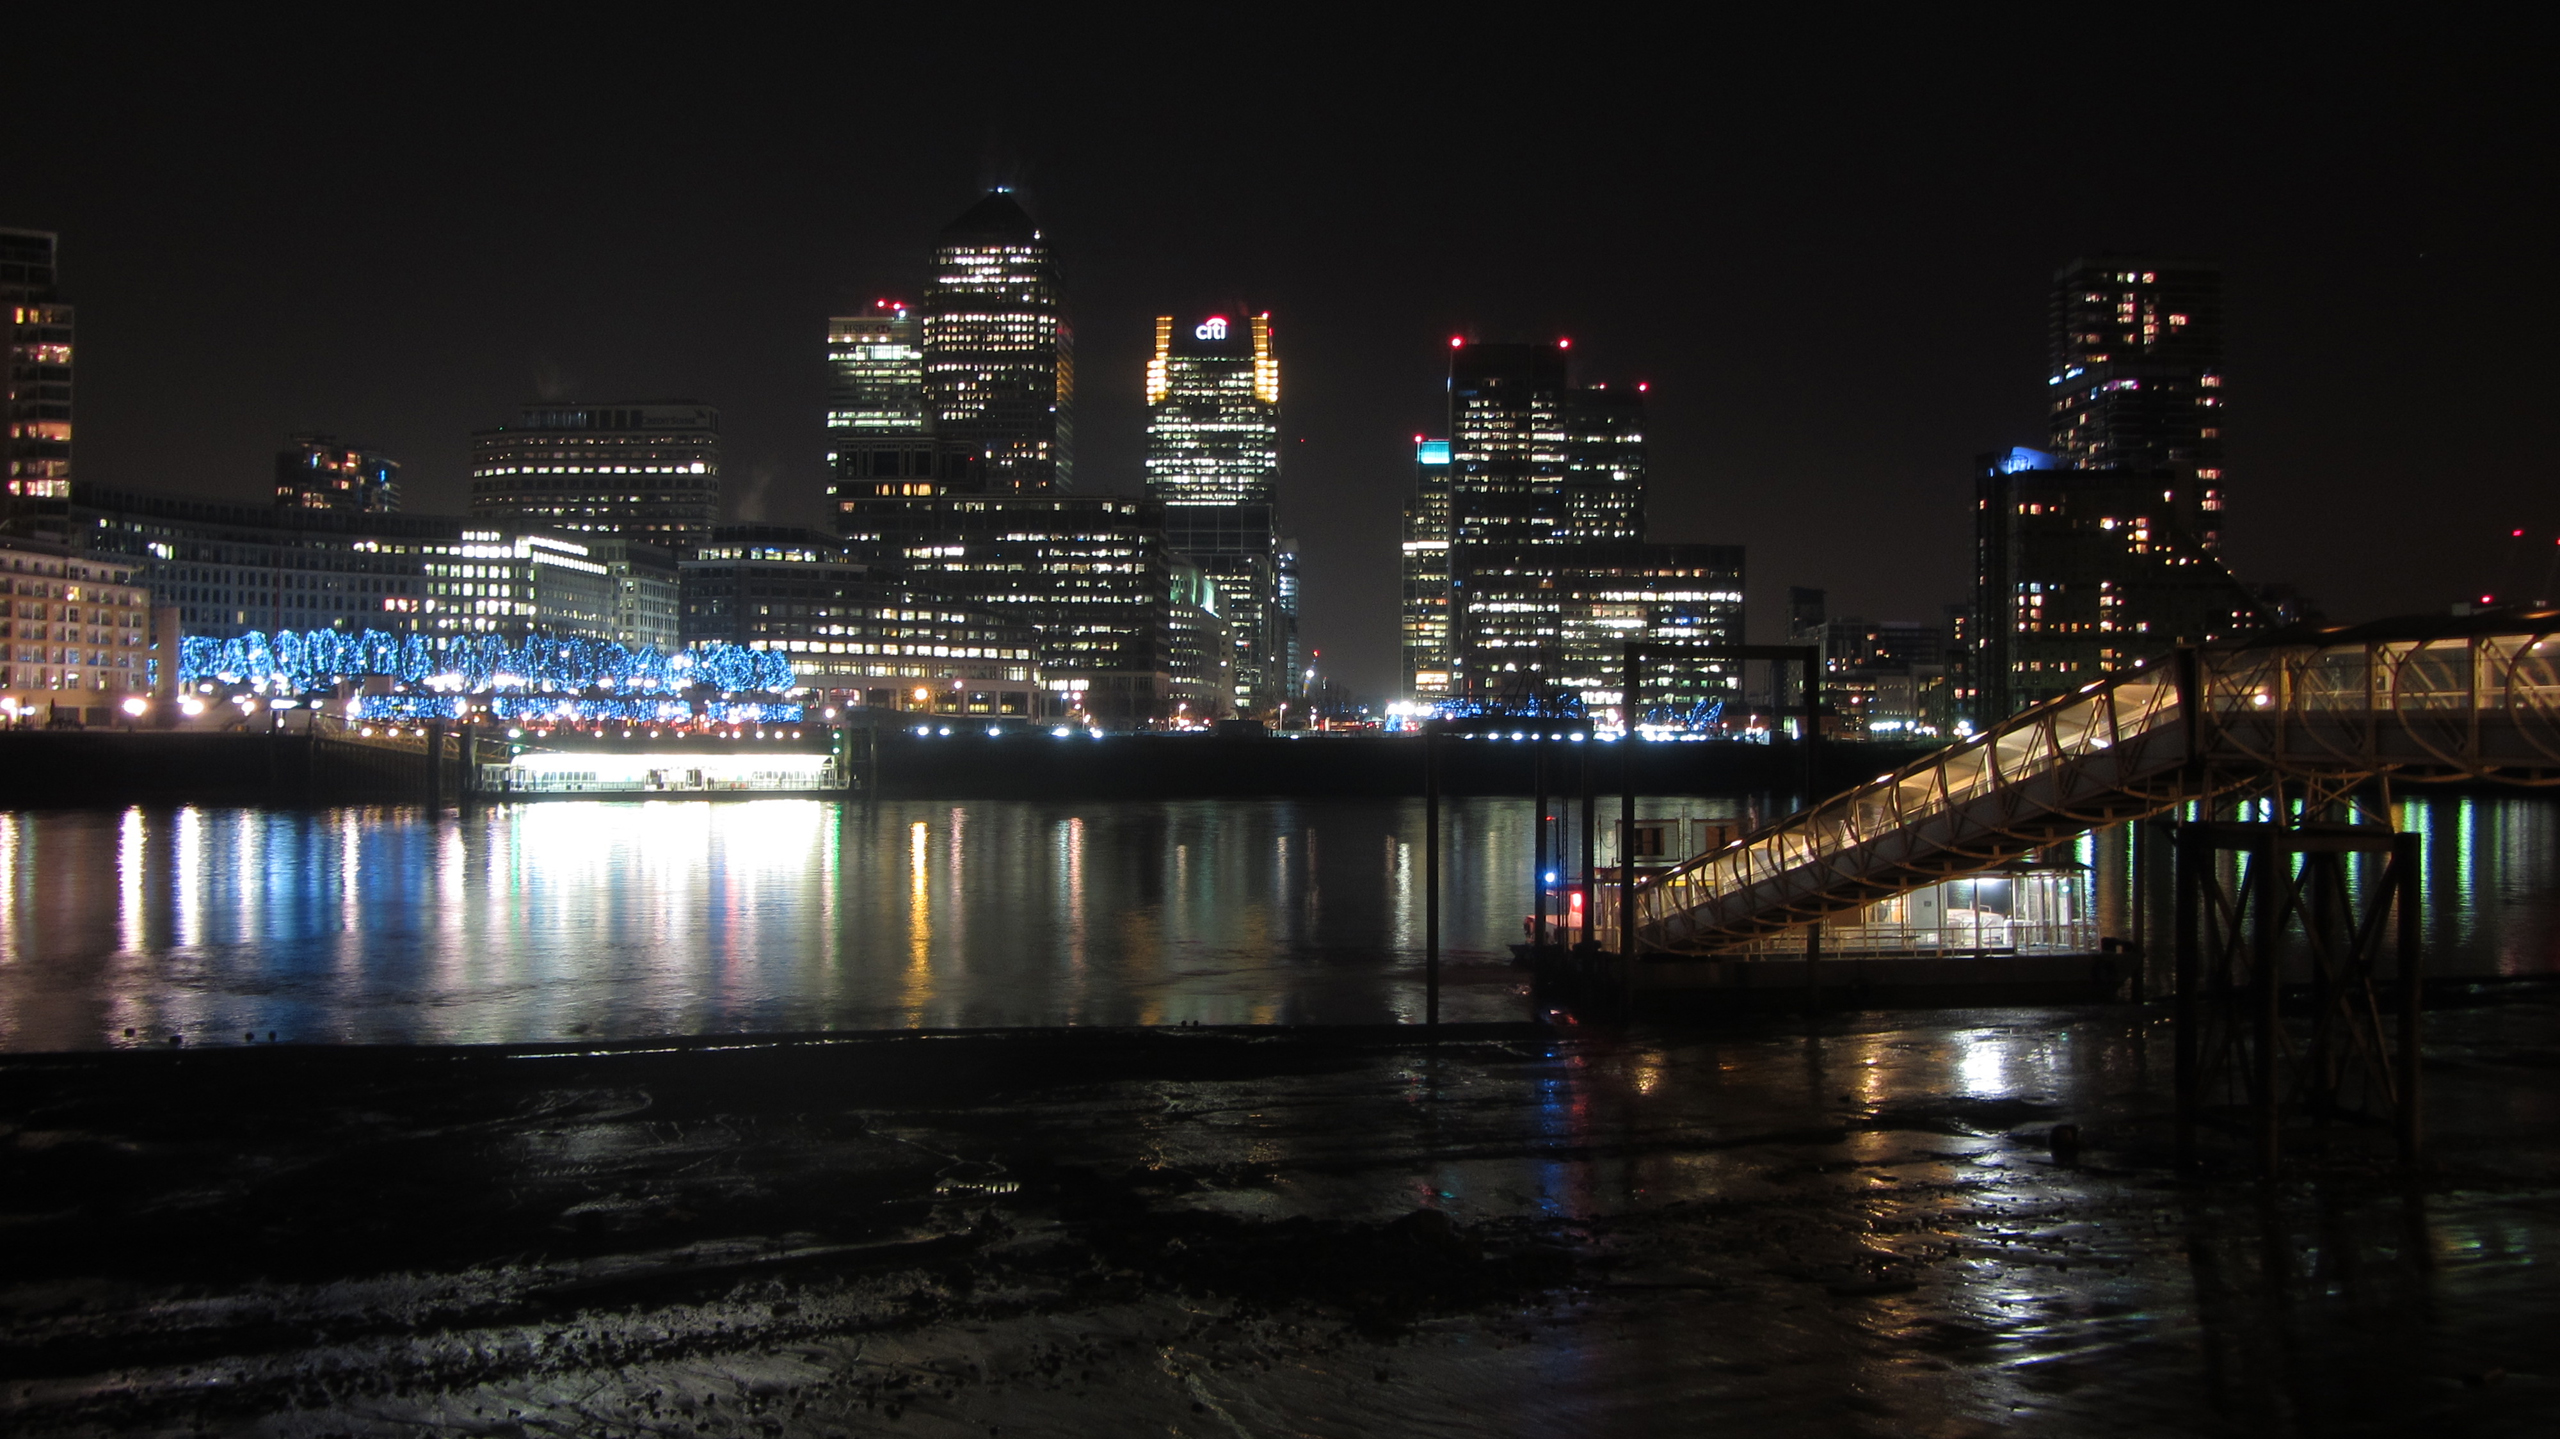 Canary Wharf at Night, March 2013